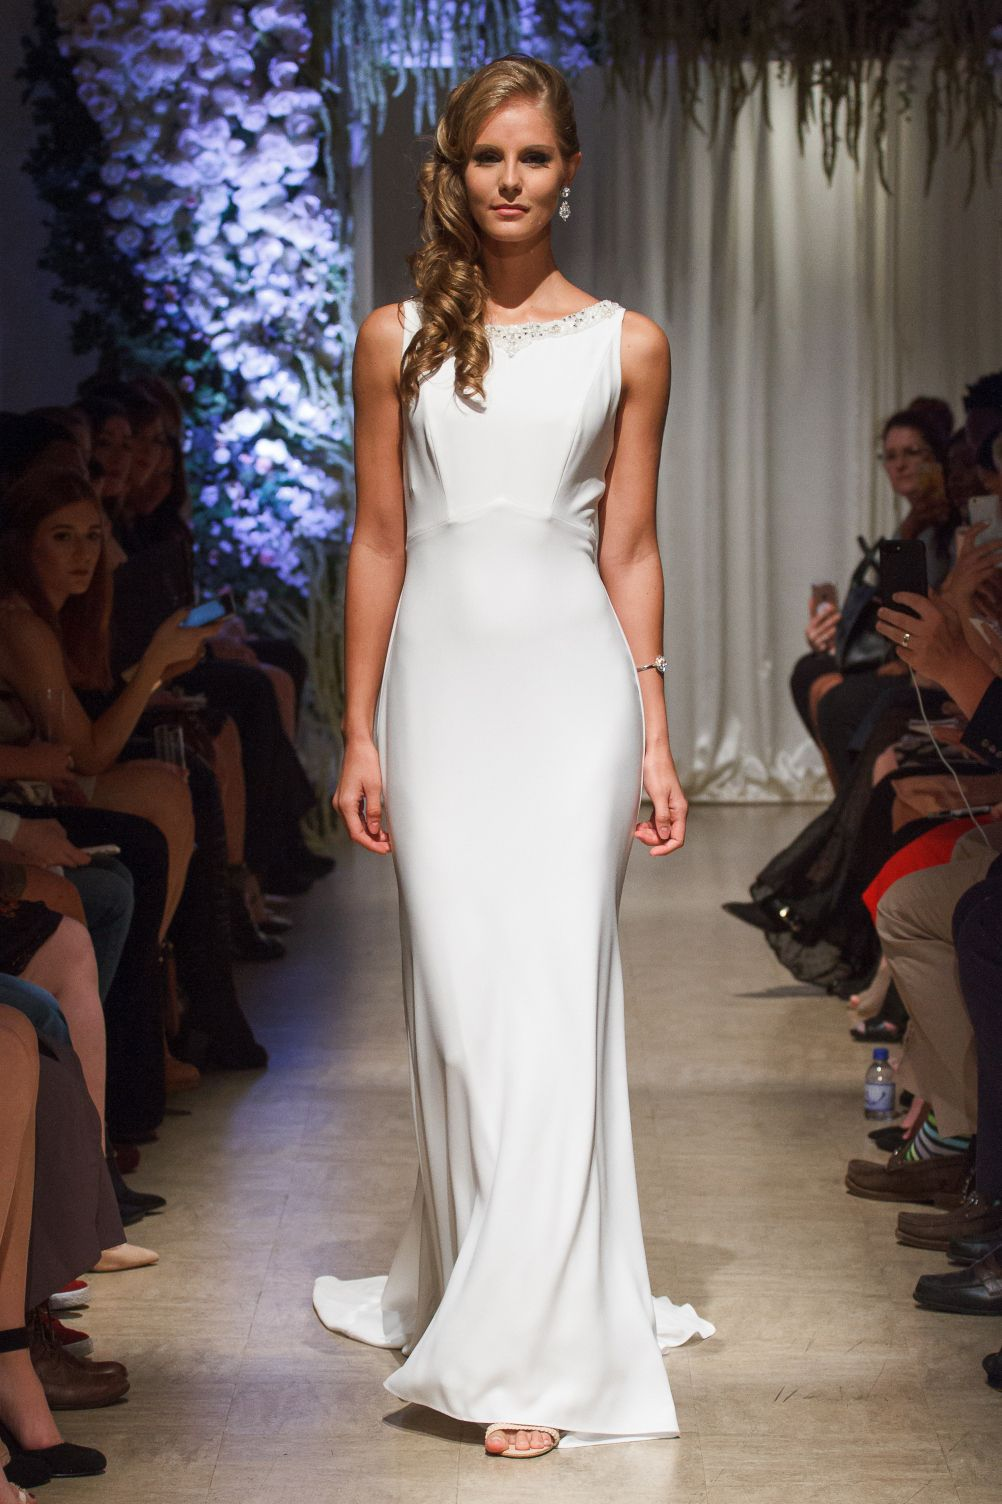 Where Can I Sell My Wedding Dress Locally - Plus Size Dresses for ...